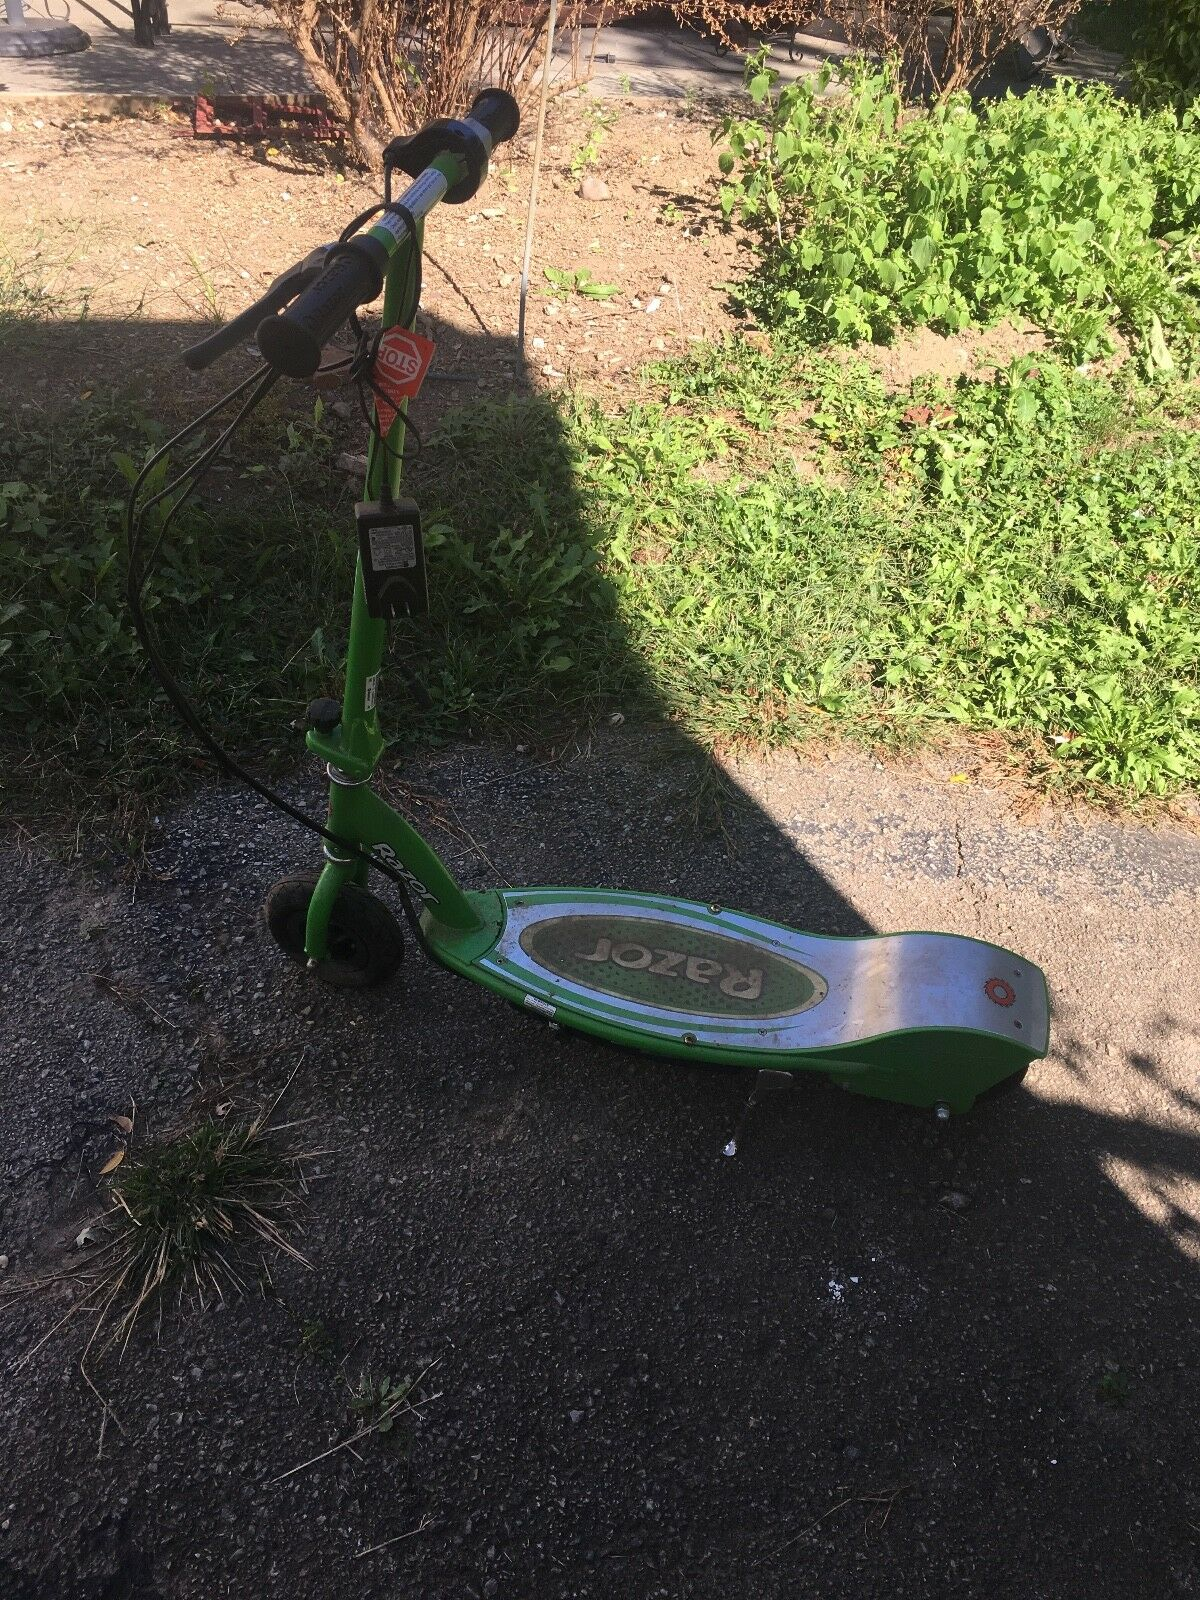 Razor Electric scooter E200 with Charger. Green.